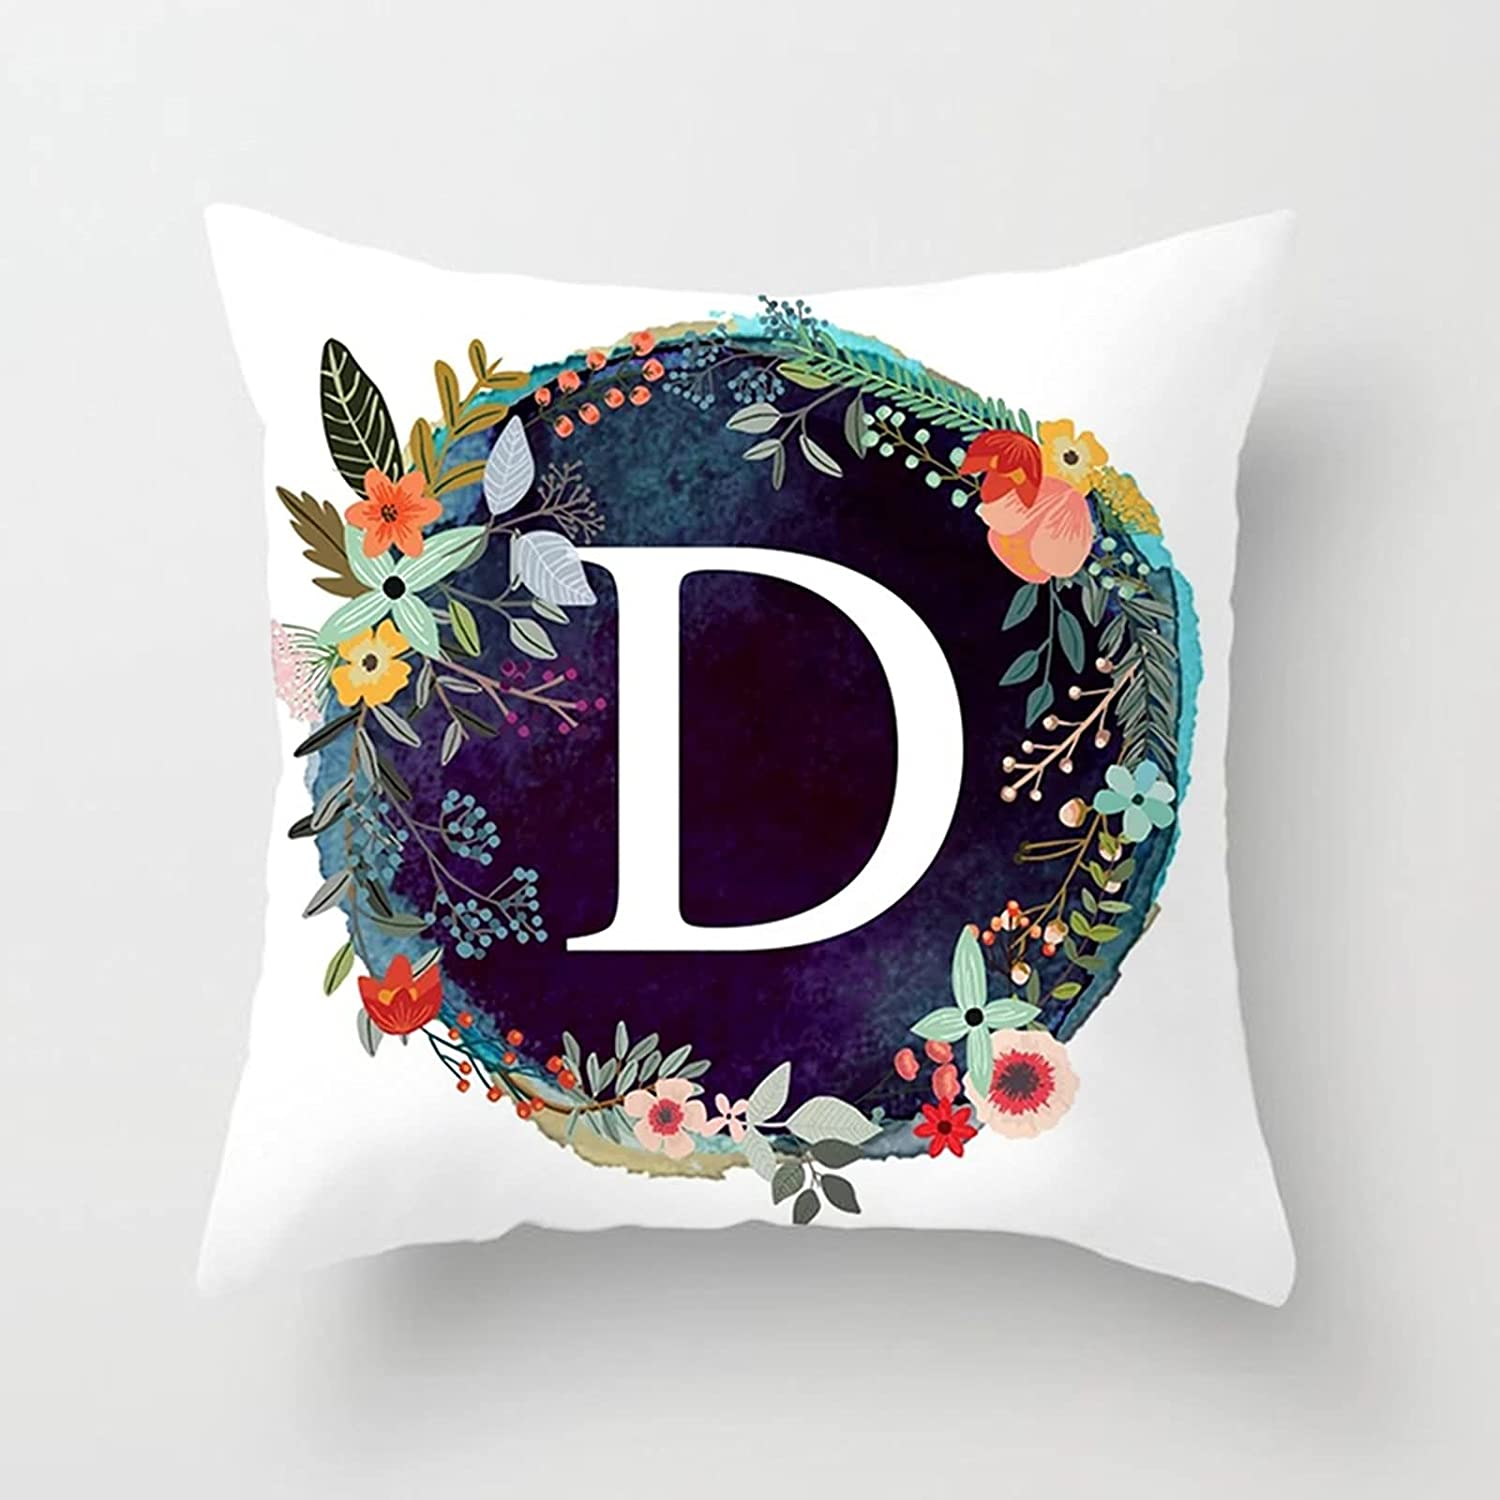 Daesar Throw Pillow Case Cover Cushion Blue Courier shipping free shipping Dark Special sale item Covers White O